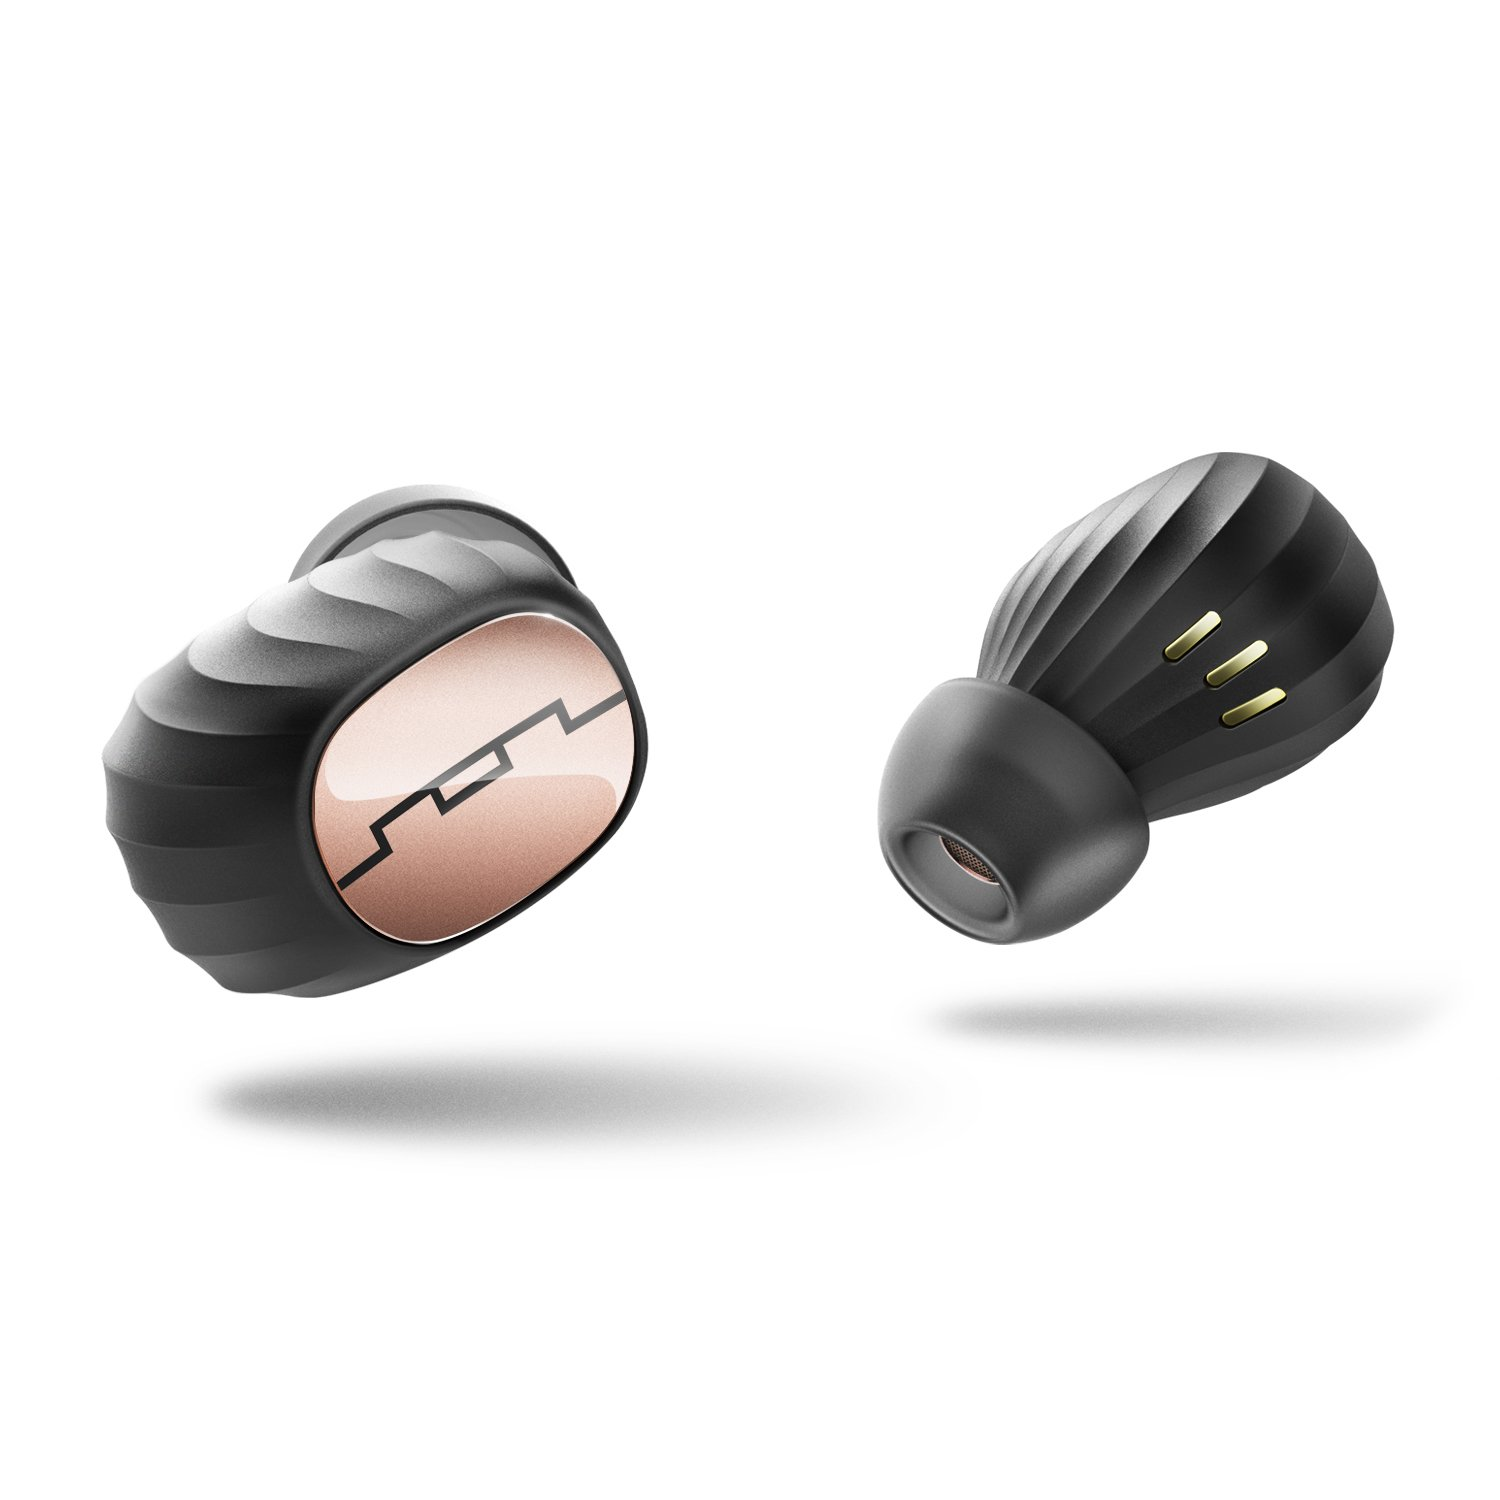 SOL REPUBLIC SOL-EP1190GD Amps Air Totally Wireless Bluetooth Earbuds – Premium Sound and Sweat Resistant for Sports. Siri compatitble, Gold/Black by SOL REPUBLIC